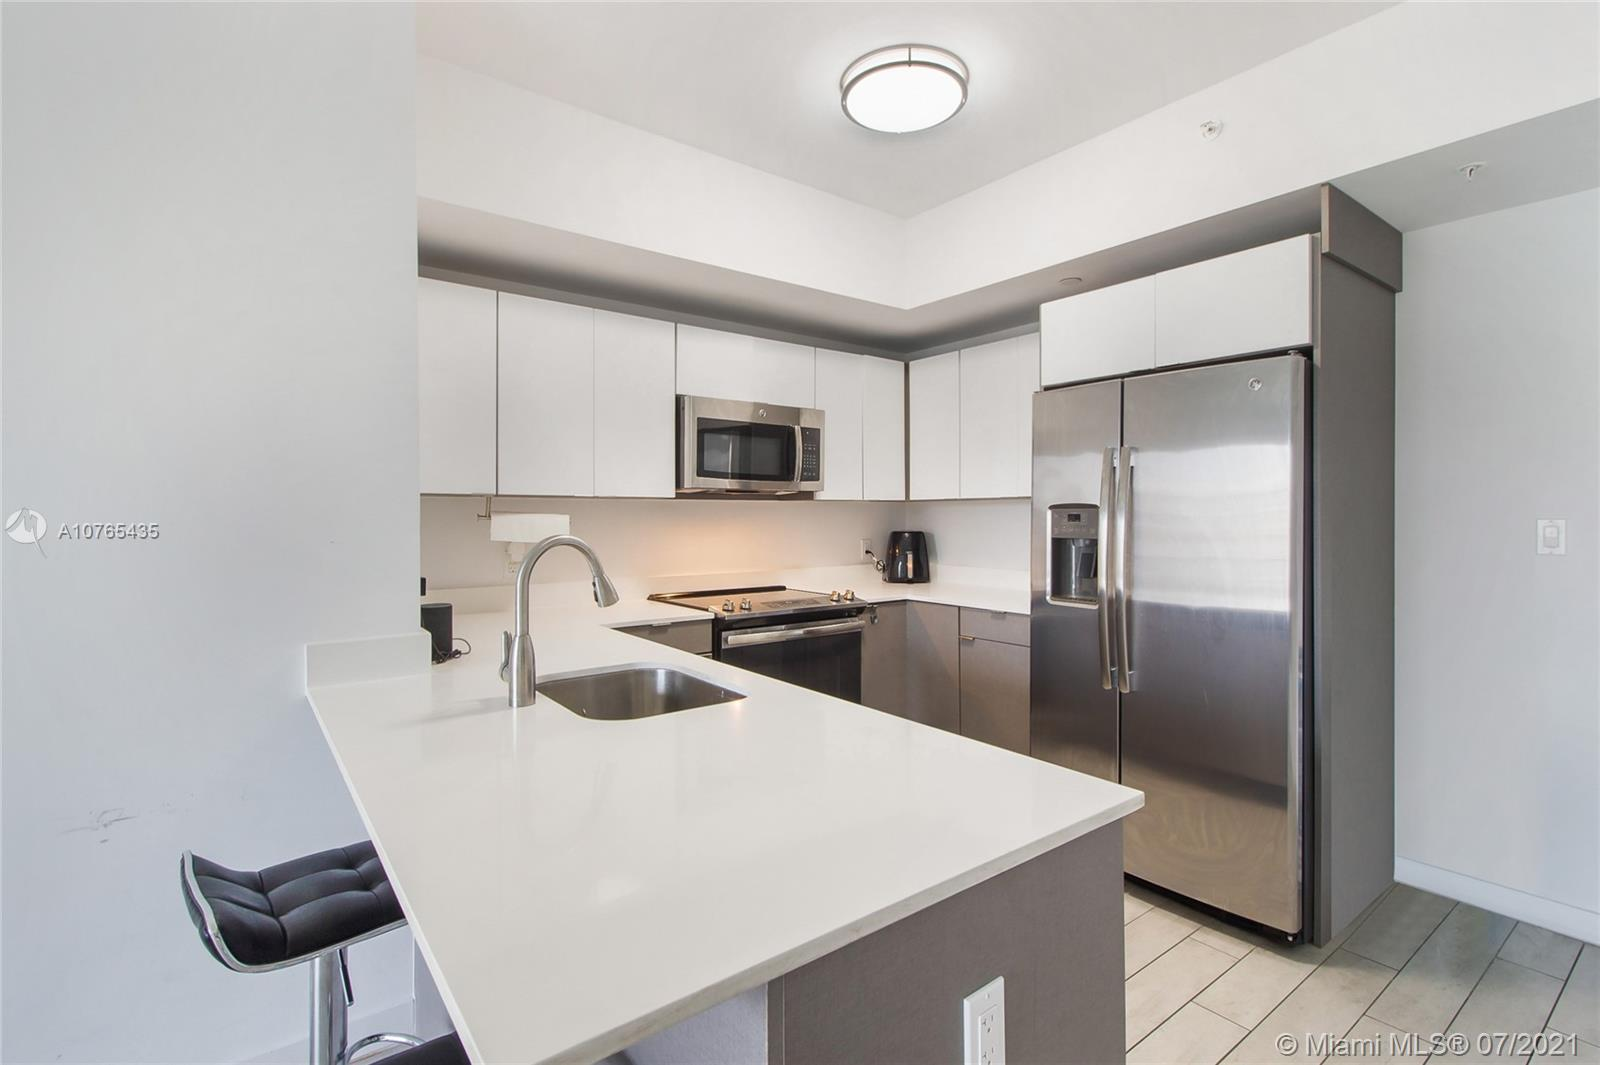 **GREAT INVESTOR OPPORTUNITY**Unit is rented for $2,100 a month until FEB 2020! Low Maintenance Fee! Boutique style building minutes from Downtown, Brickell, Midtown, Design District and much more! Beautiful 2/2 unit in the popular Edgewater neighborhood.  Unit features porcelain wood style floors, floor to ceiling impact windows and sliding doors and 9 foot ceilings.  Residents of 26 Edgewater can enjoy amenities such as rooftop pool, lounge and sun deck, fitness center and party room!